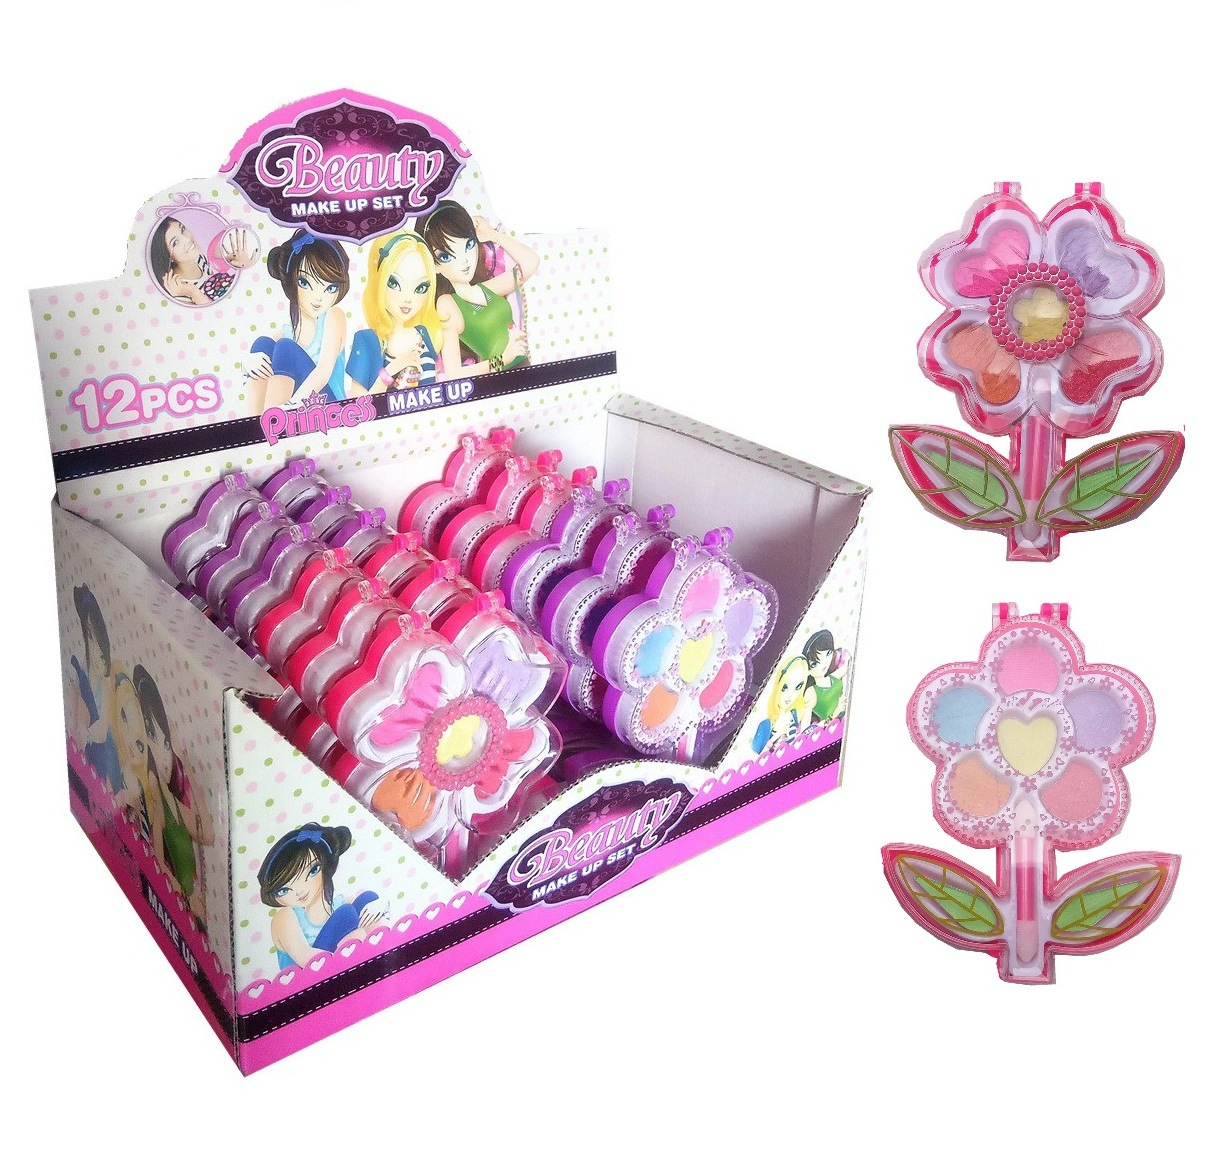 Children's Play House Toy Make-up Cosmetics Five Petals Water-soluble Eye Shadow Powder Raw Material Accessories